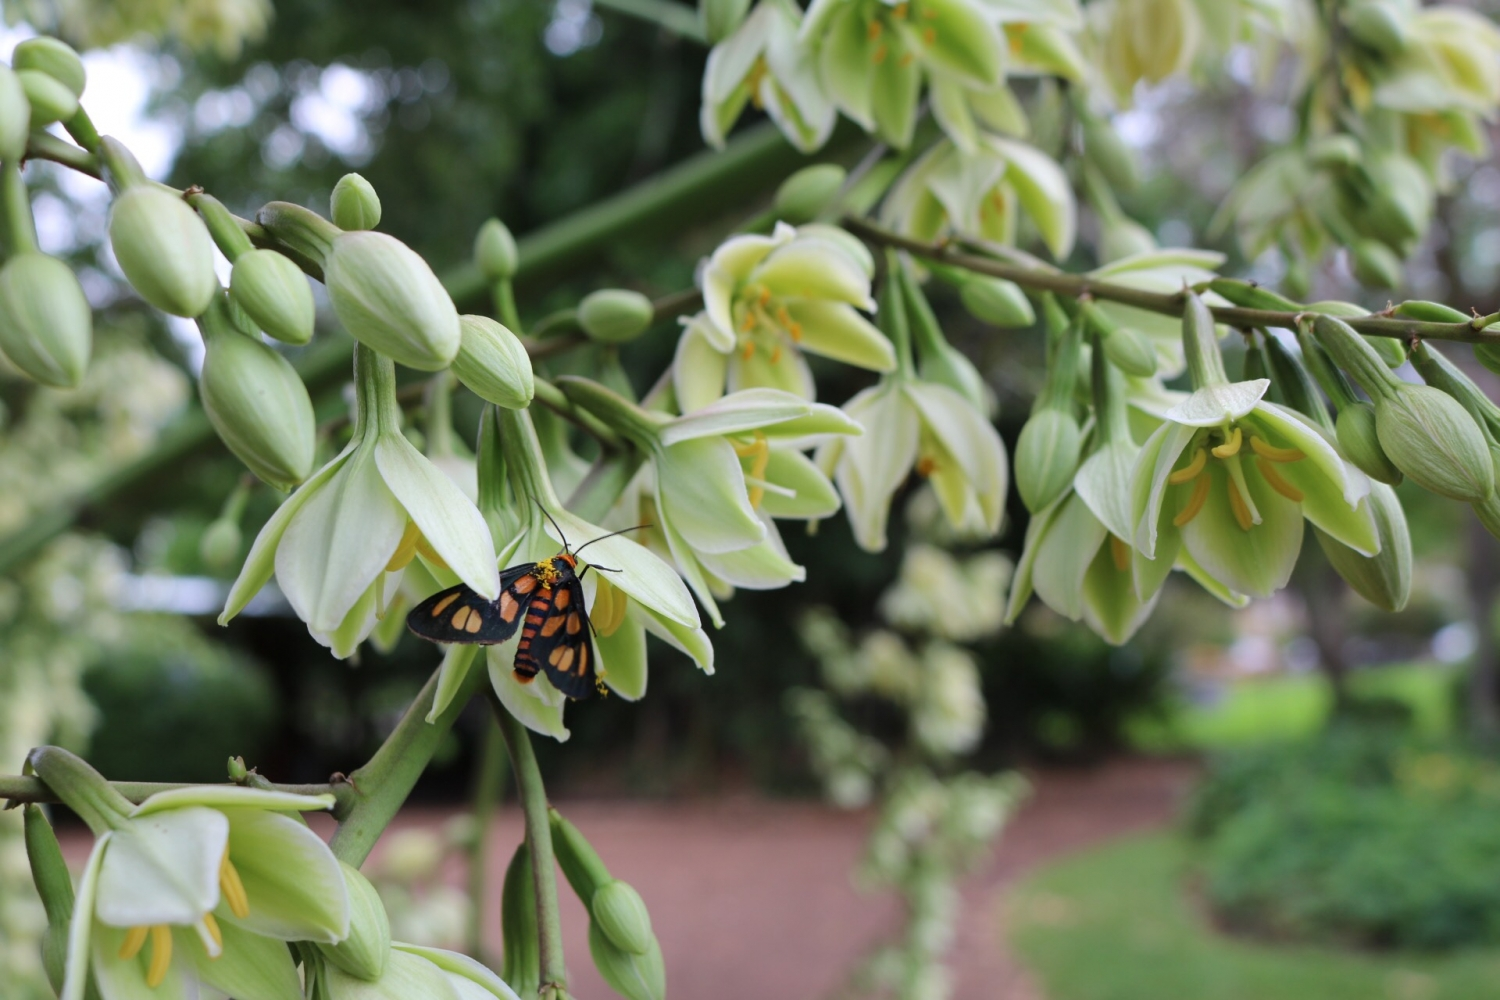 Furcraea Flowers with a tiger moth looking for nectar